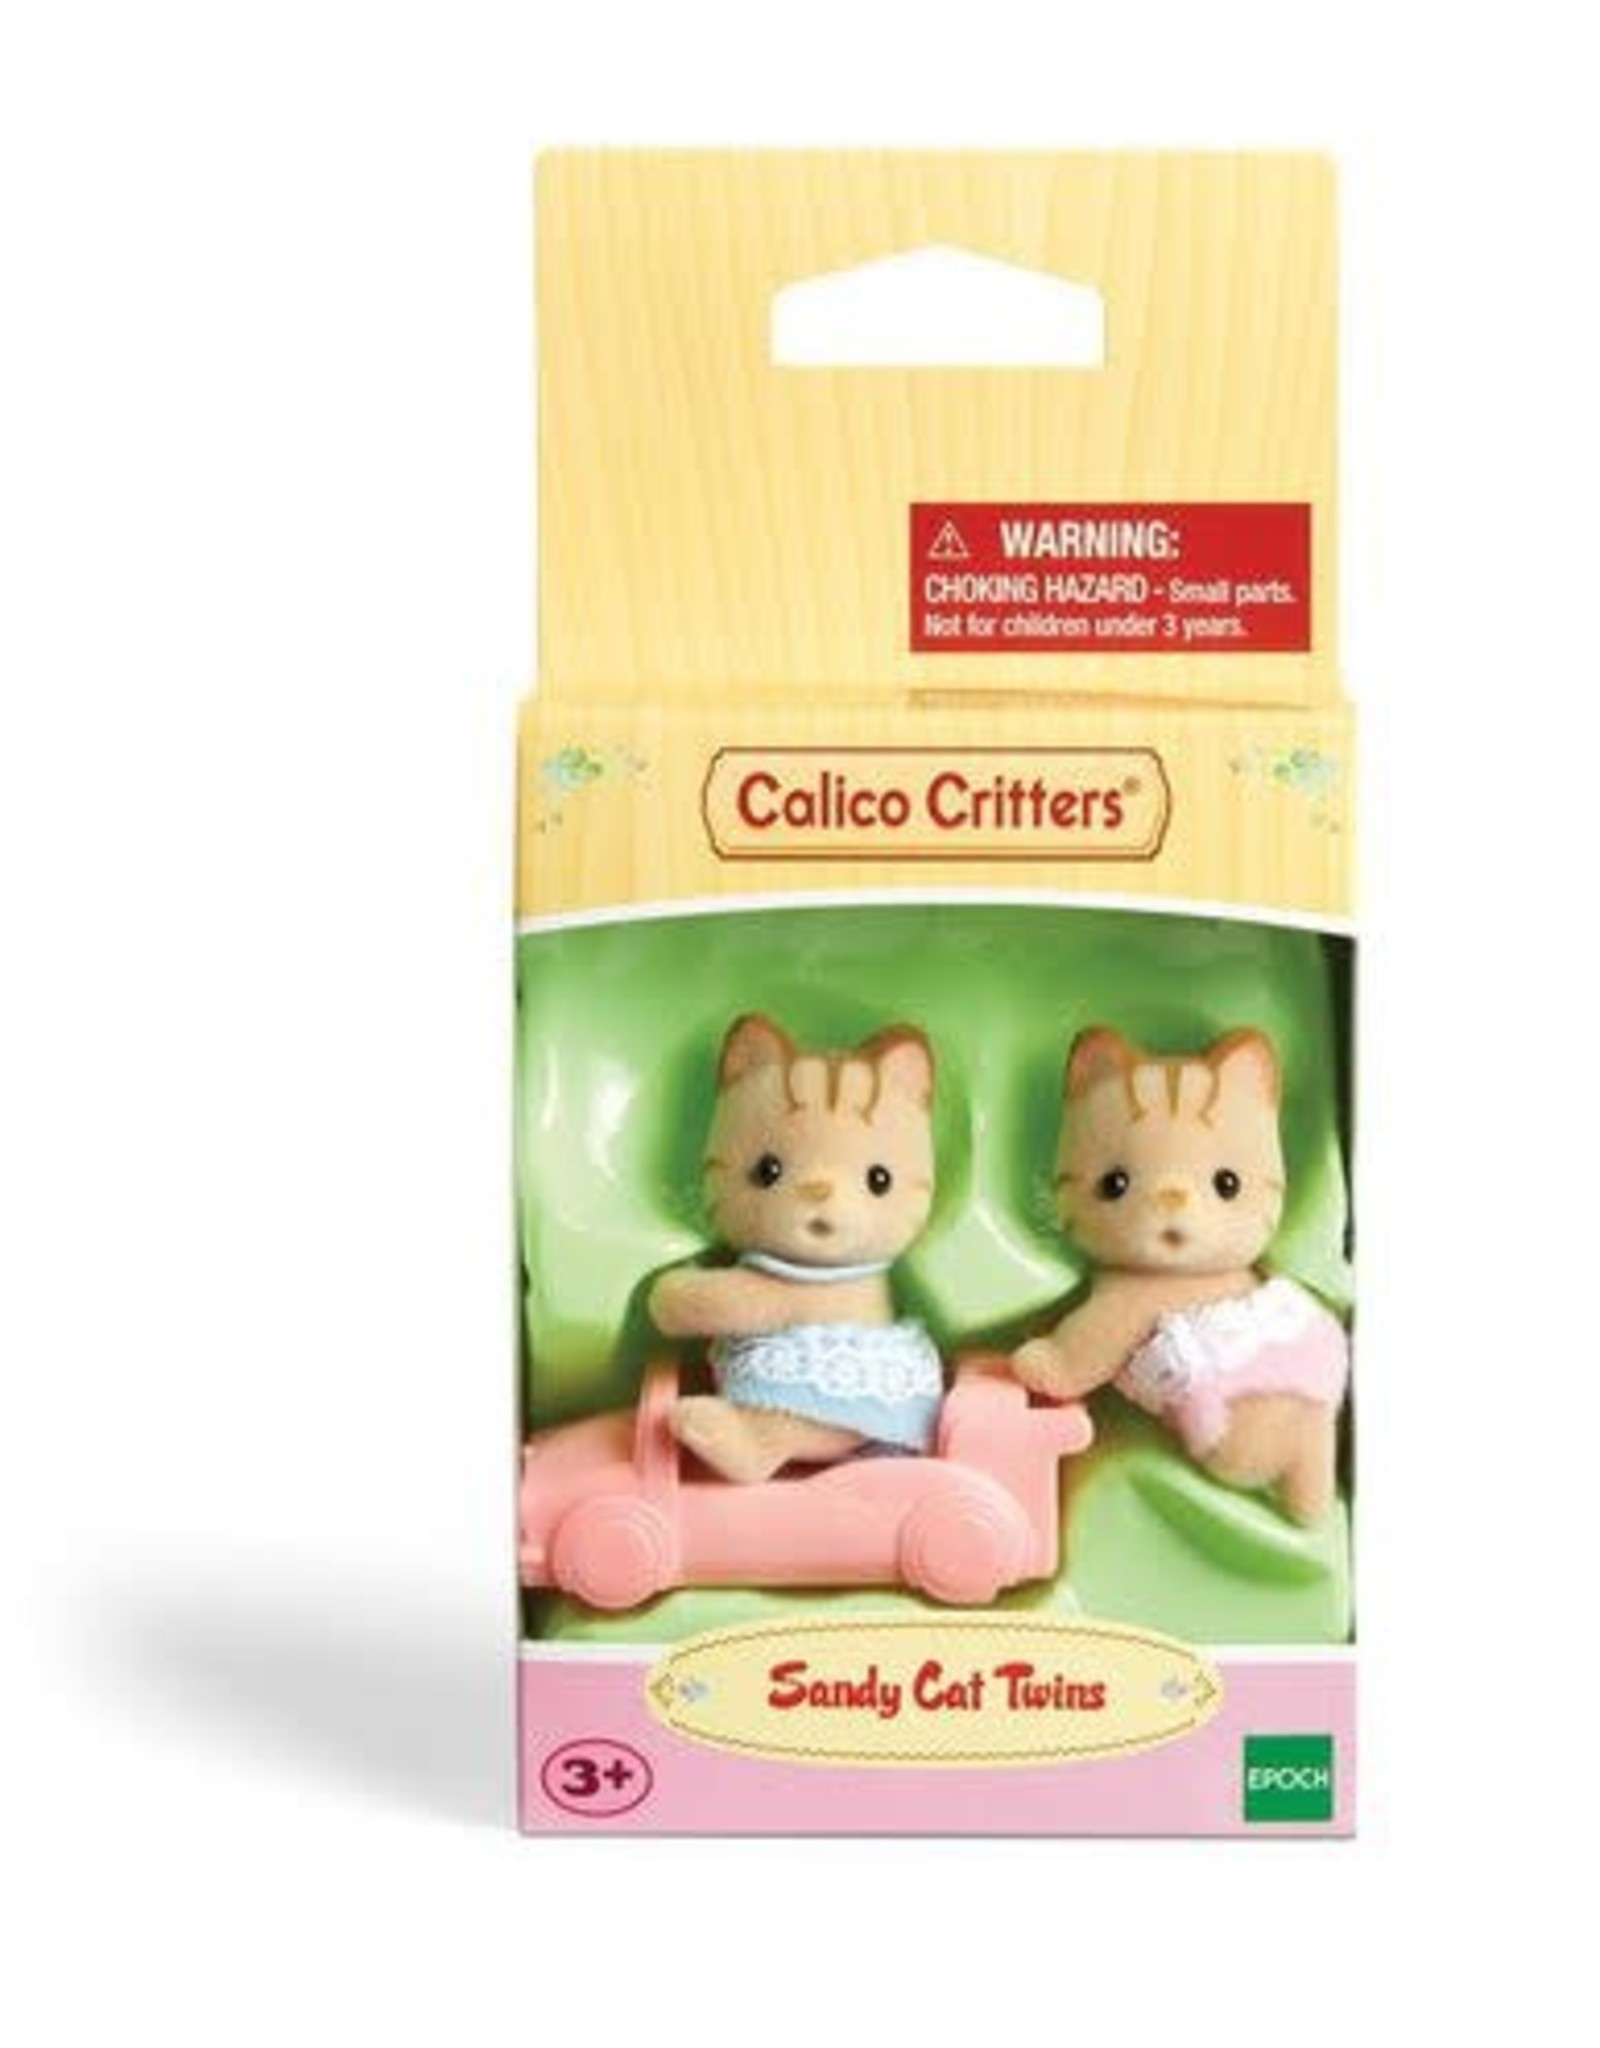 Calico Critters Calico Critters Sandy Cat Twins